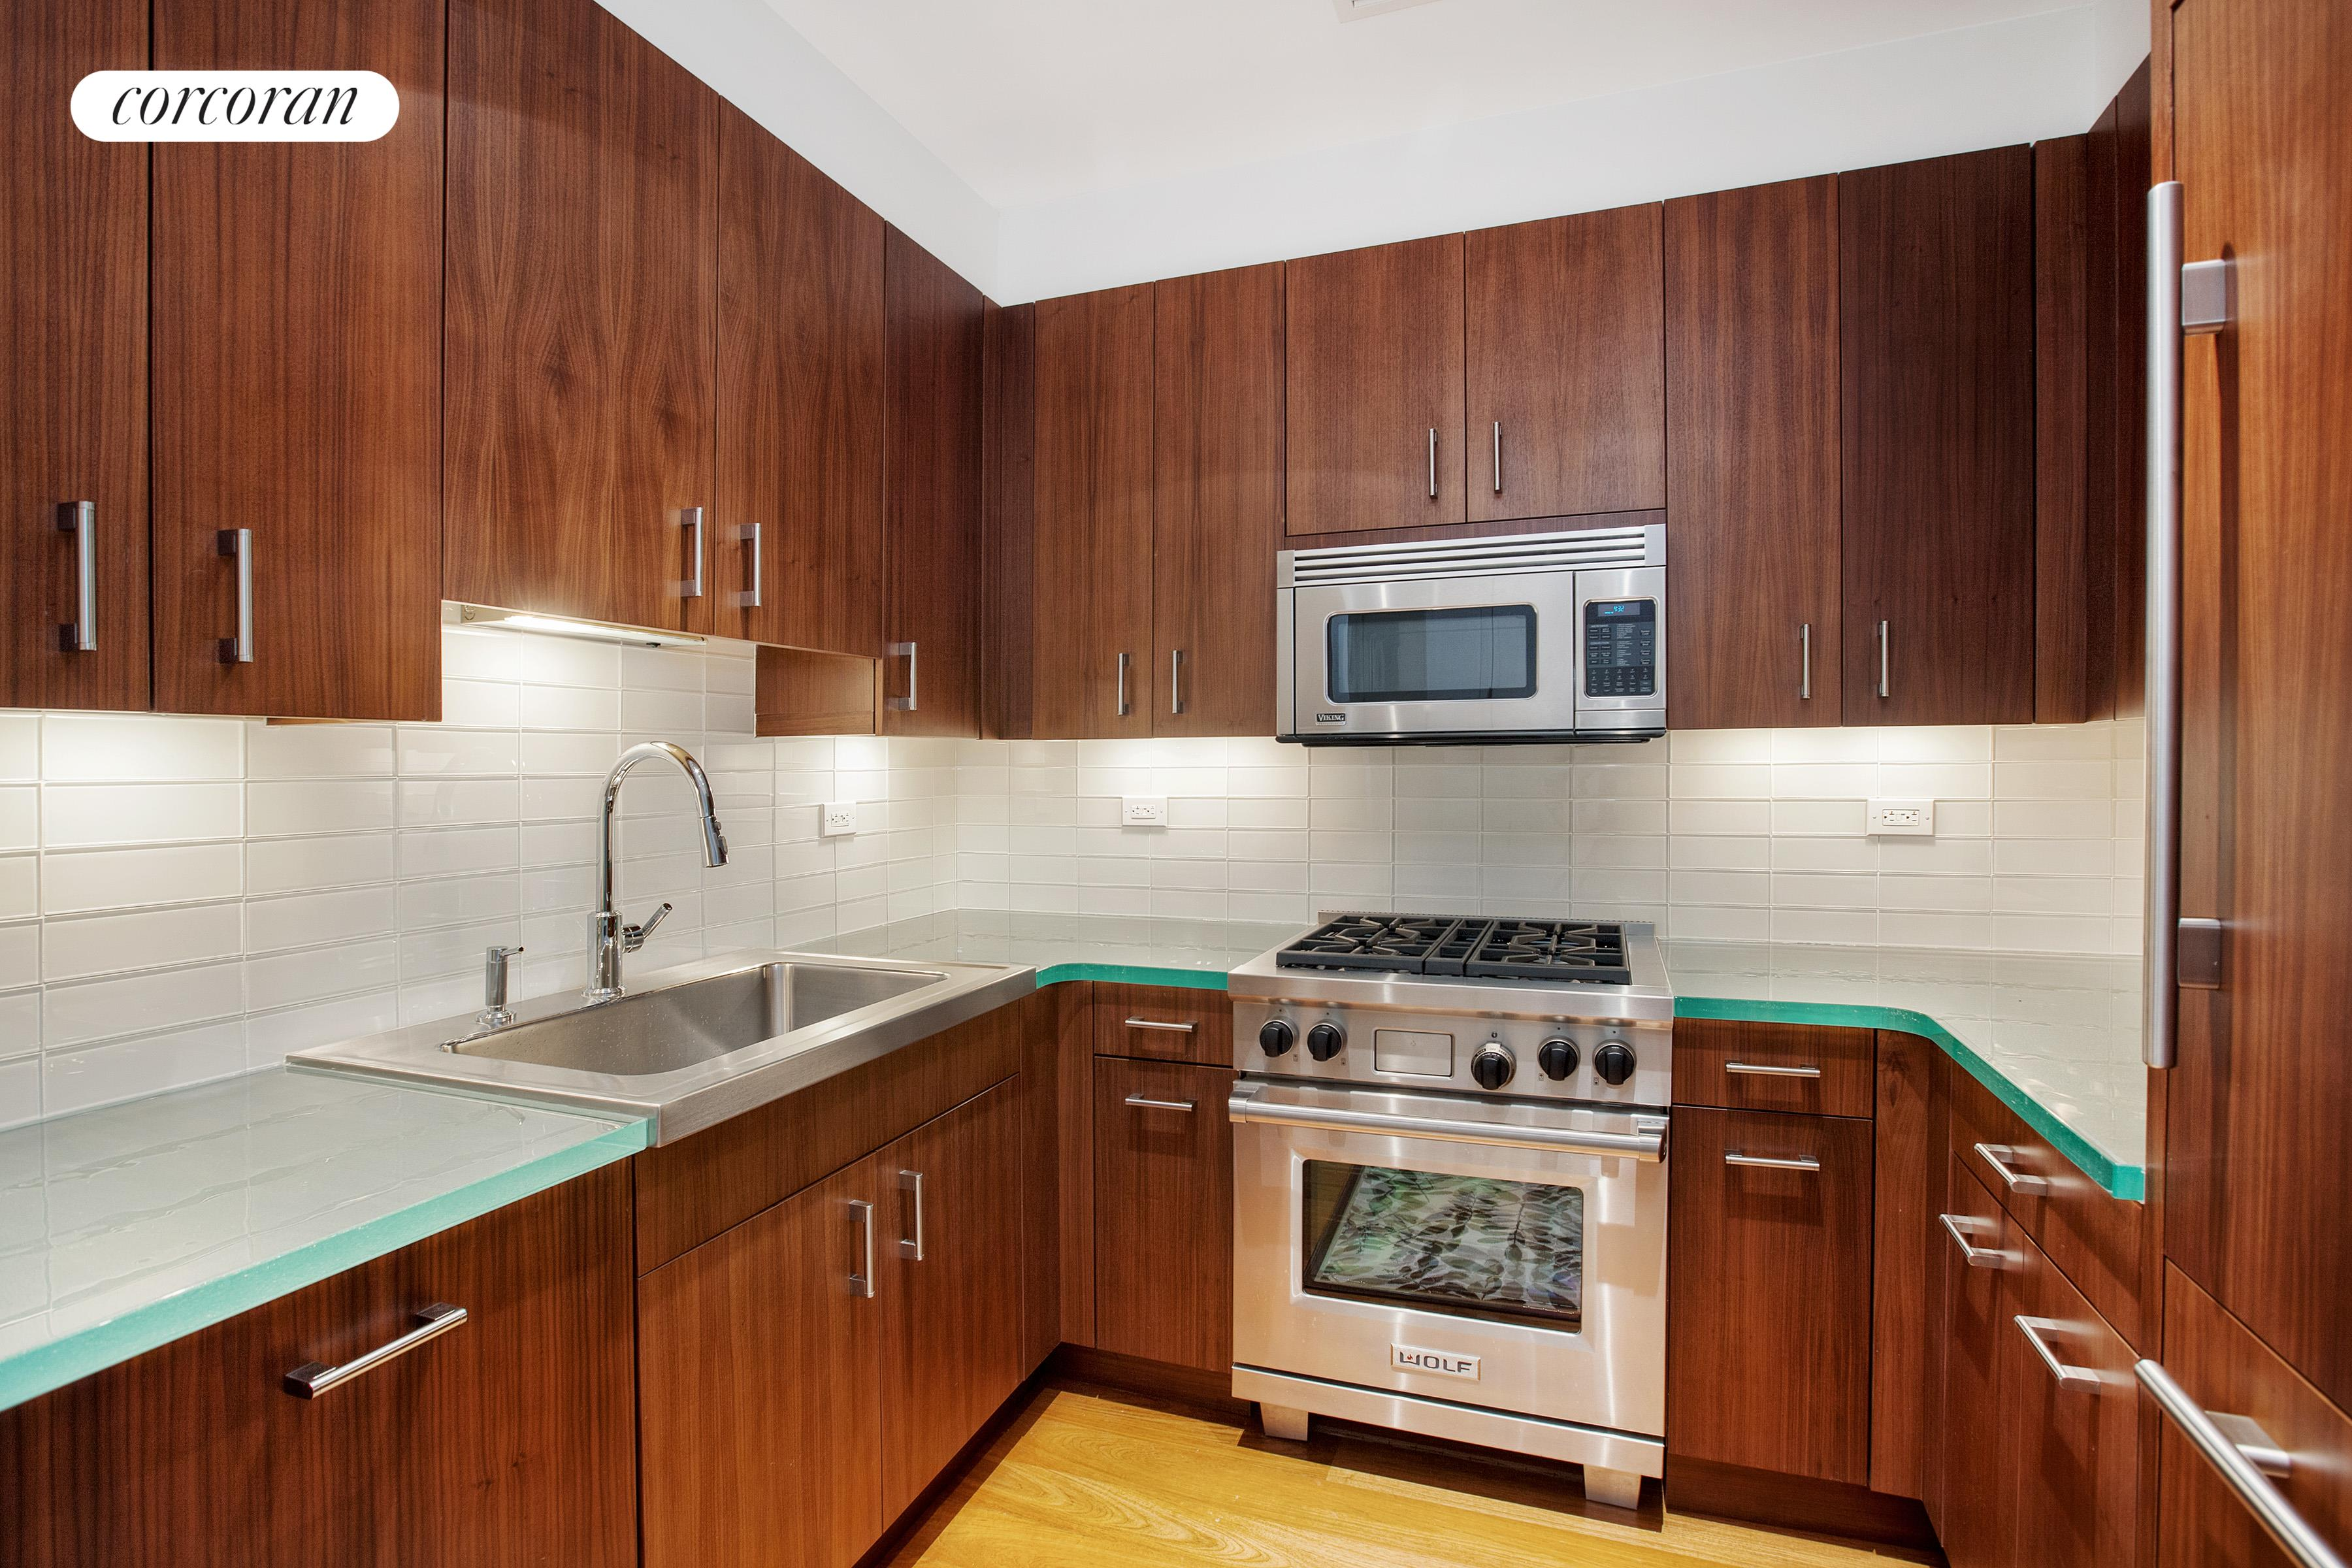 Apartment for sale at 33 West 56th Street, Apt 5C